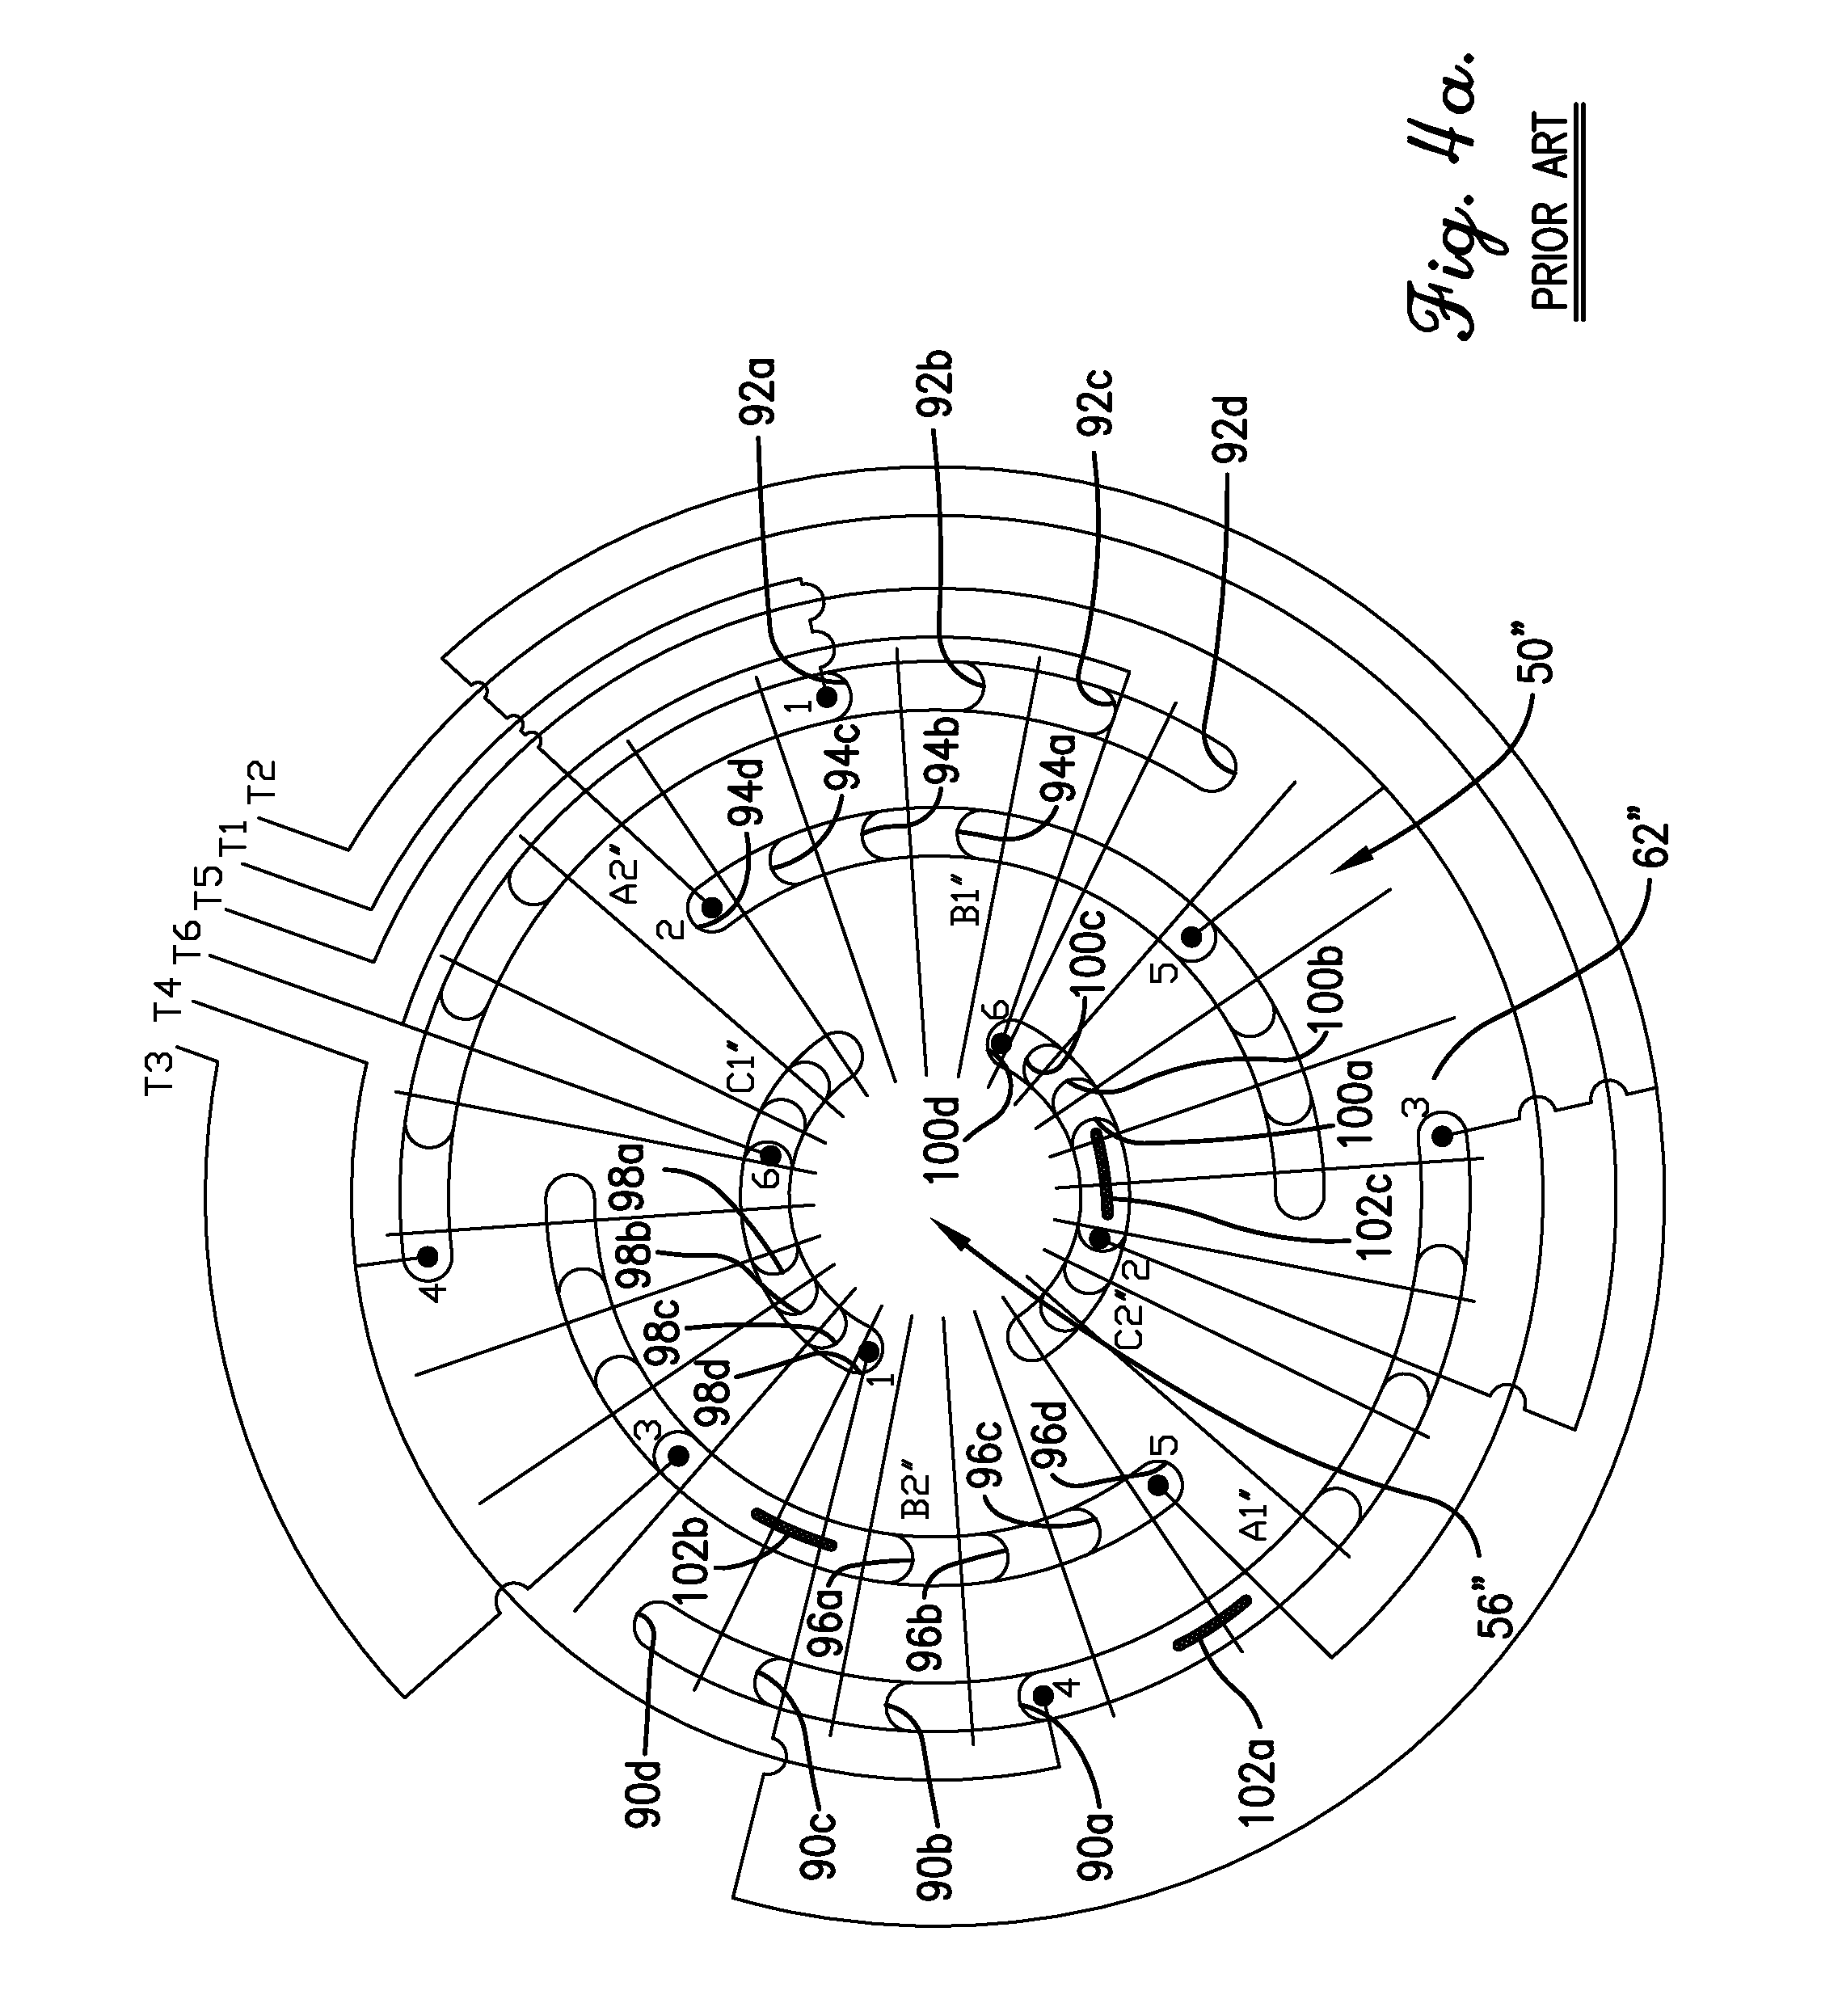 Table Fan Motor Winding Diagram Circuit Relaycontrol Controlcircuit Seekic Patent Us20170309785 3t Y Connection For Three Phase